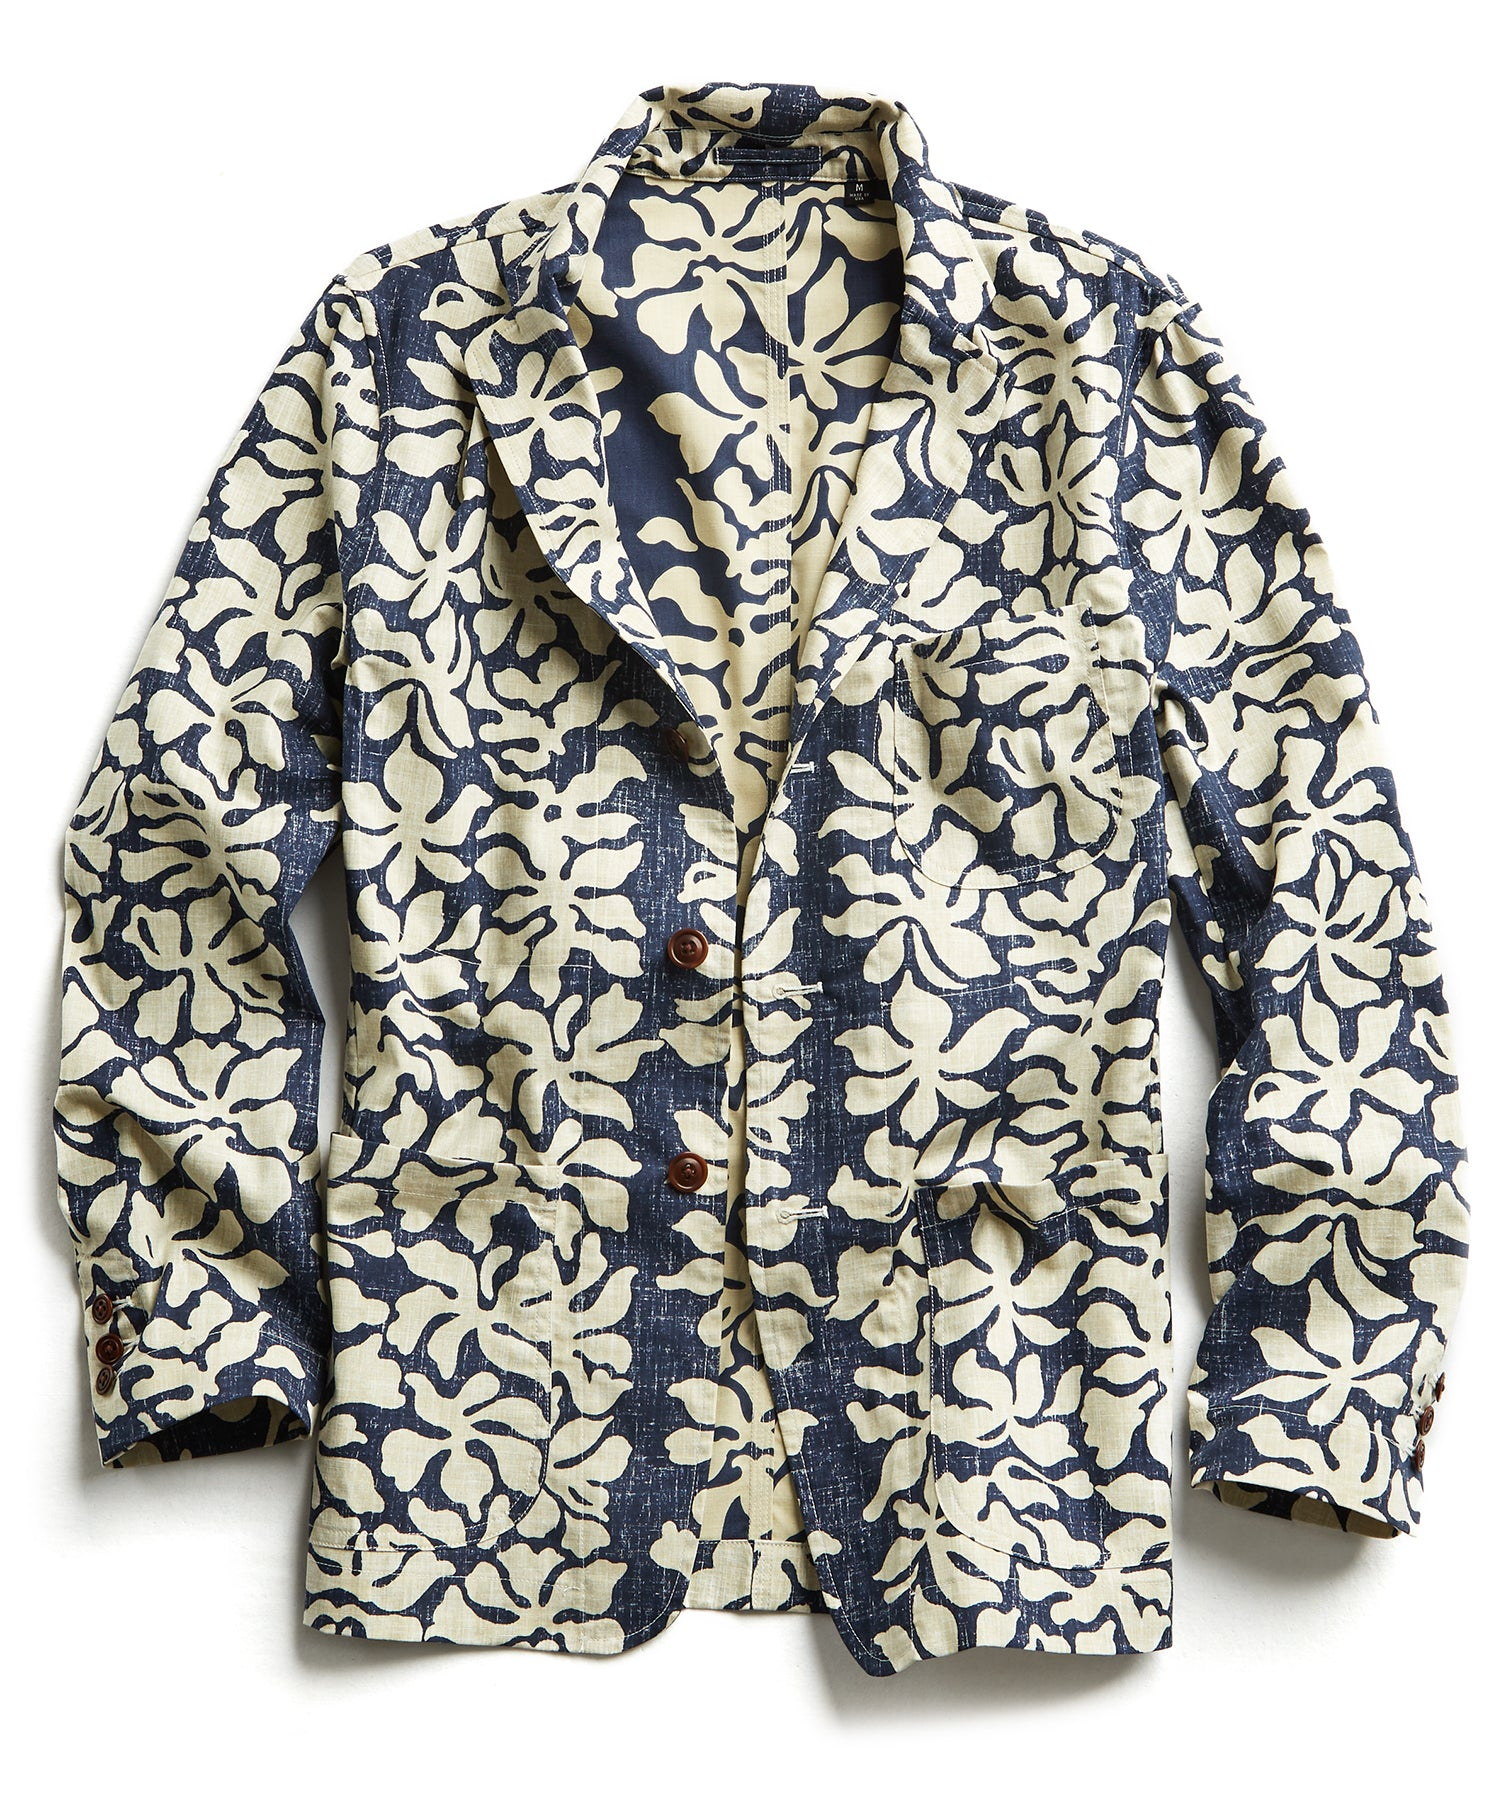 Exclusive Reyn Spooner Unconstructed Blazer in Blue